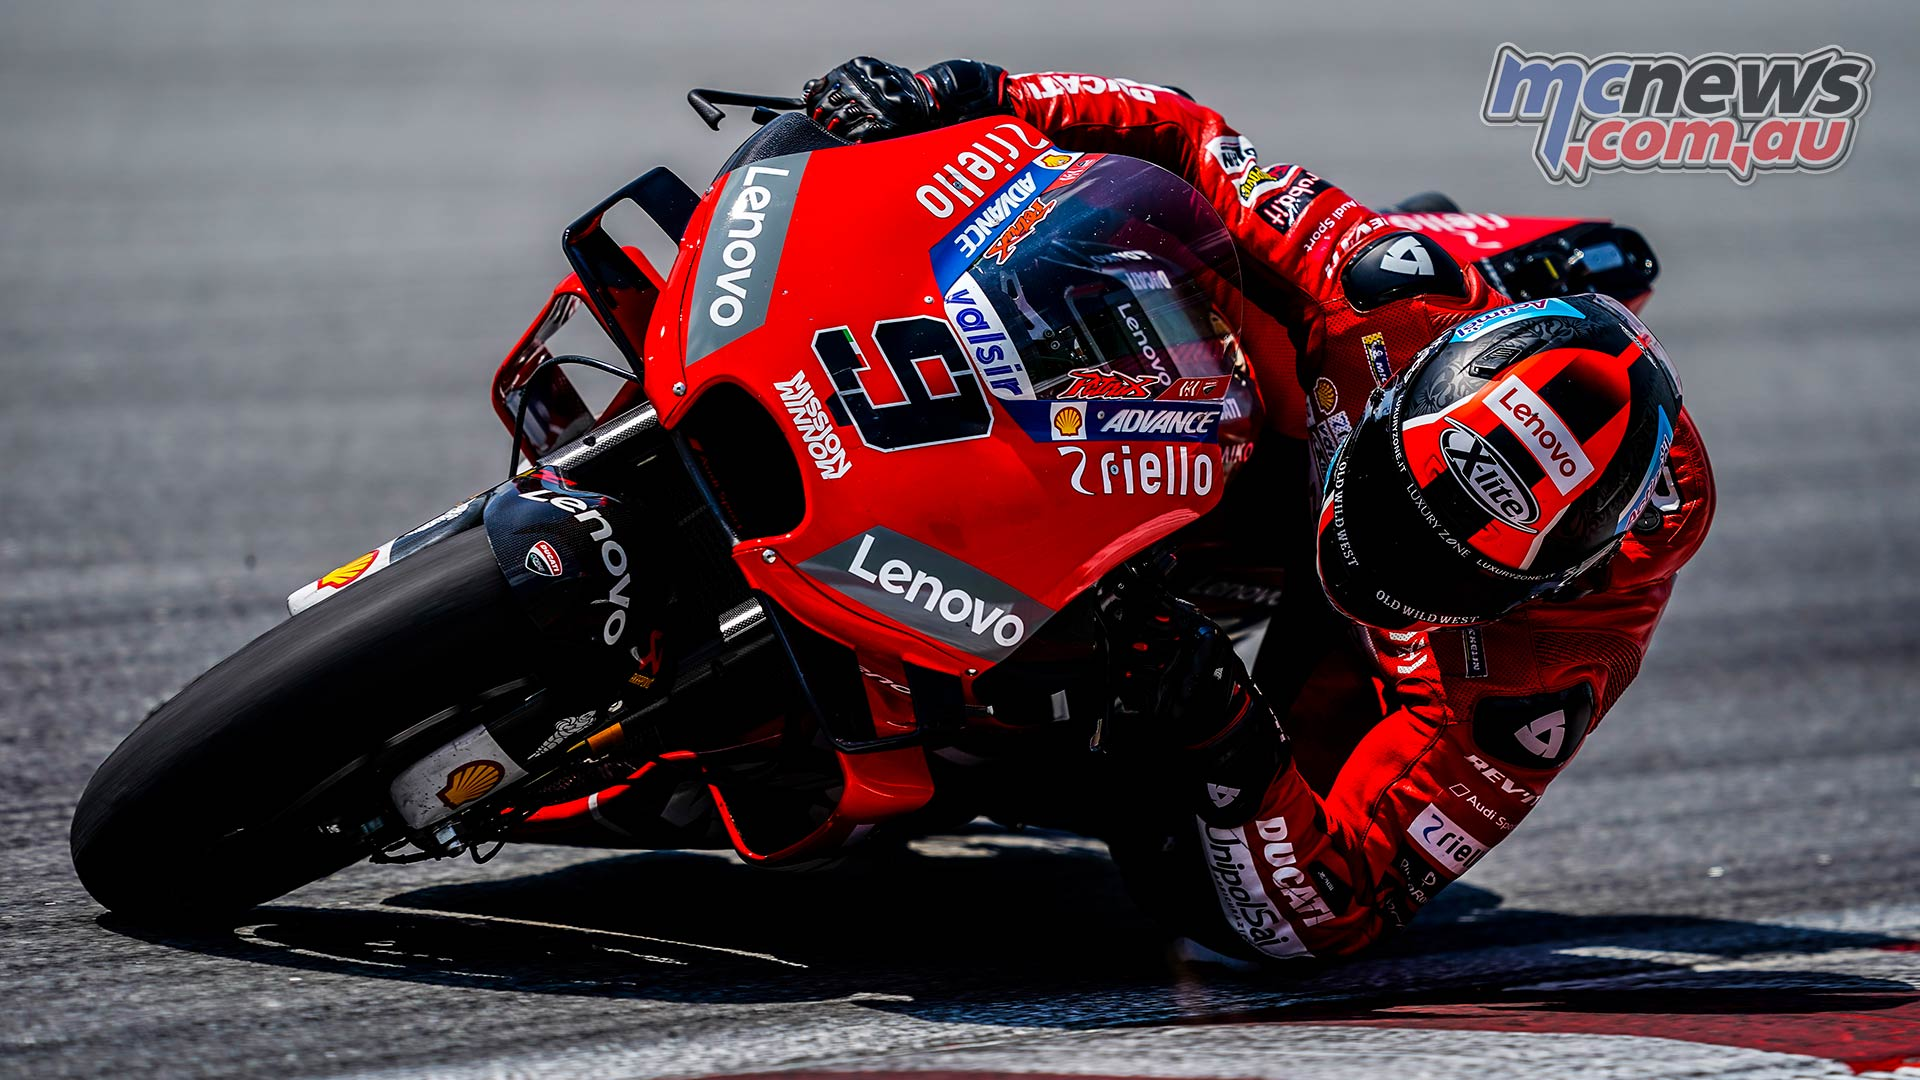 Riders and Team Managers reflect on #SepangTest | MCNews ...